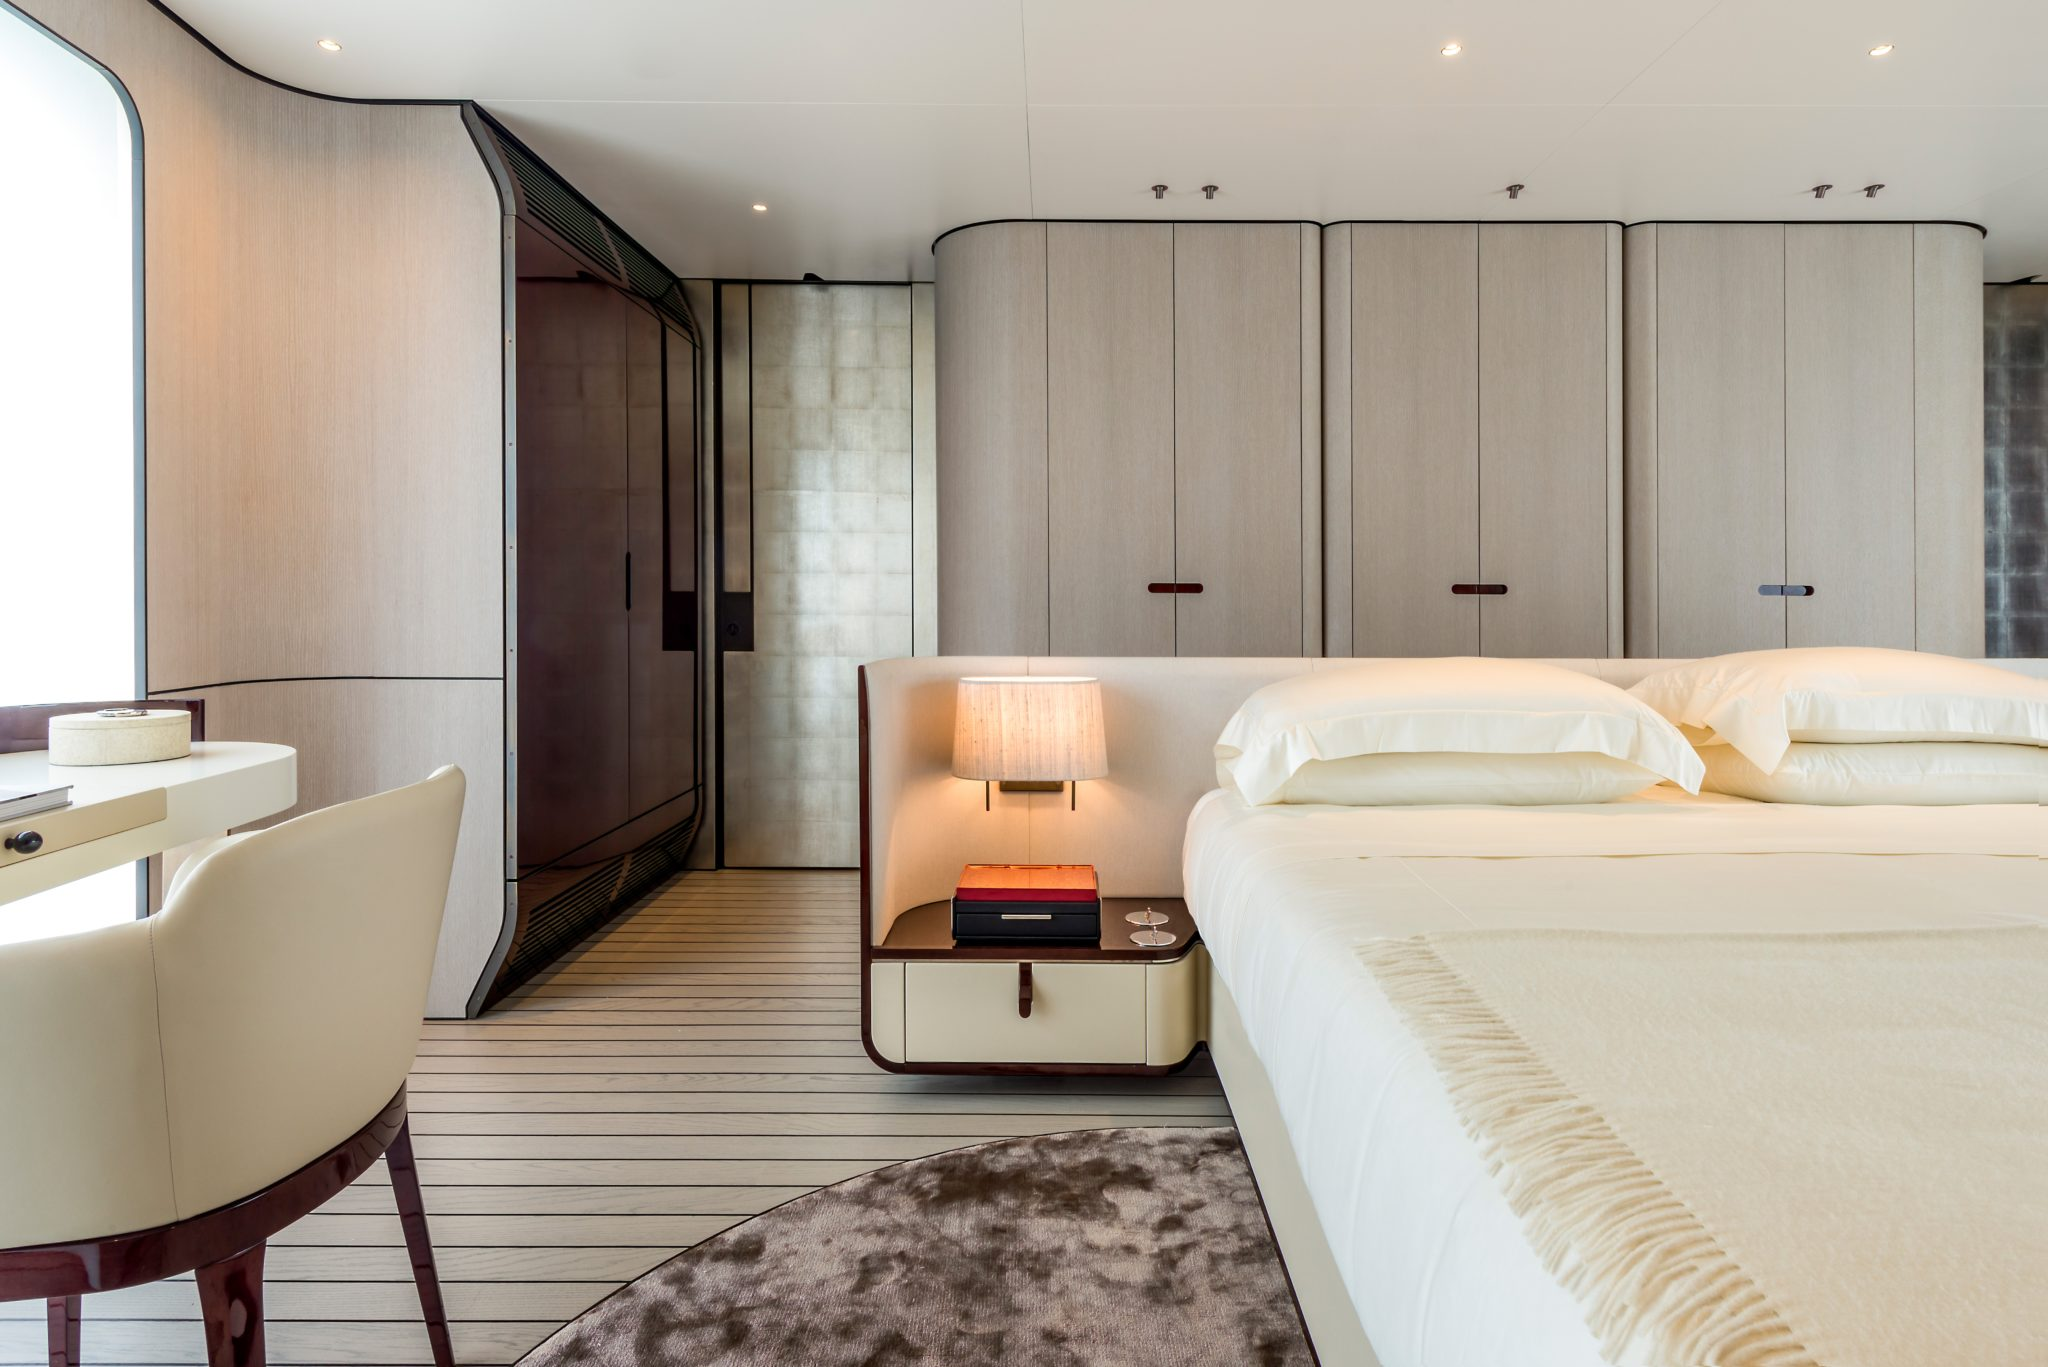 Yachts present special design challenges. To create warmth and volume in this floating bedroom, Salvagni designed a room of gentle curves, including a free-floating nightstand that is incorporated into the parchment-covered headboard.